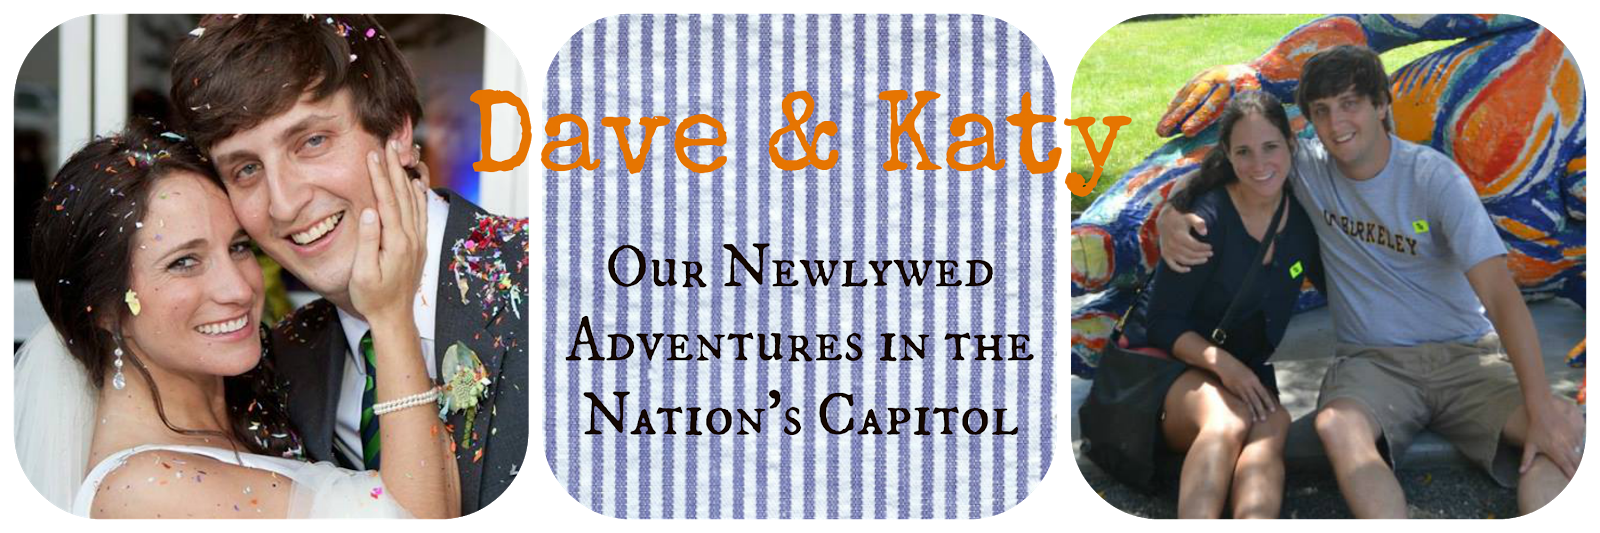 Our Newlywed Adventures in the Nation's Capitol